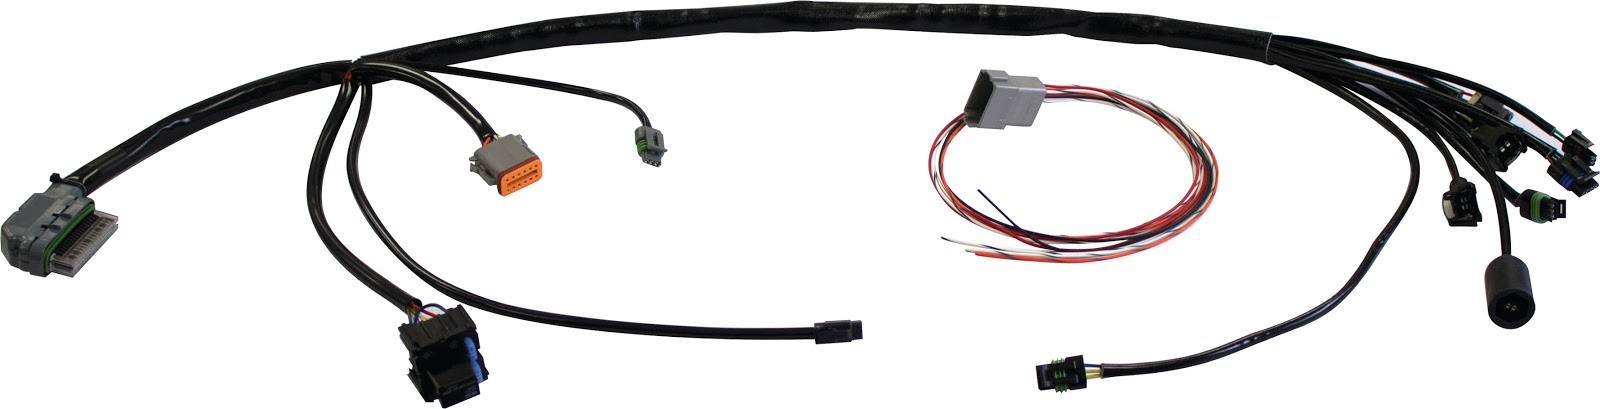 V-Twin News: New! S&S Universal EFI Wiring Harness on